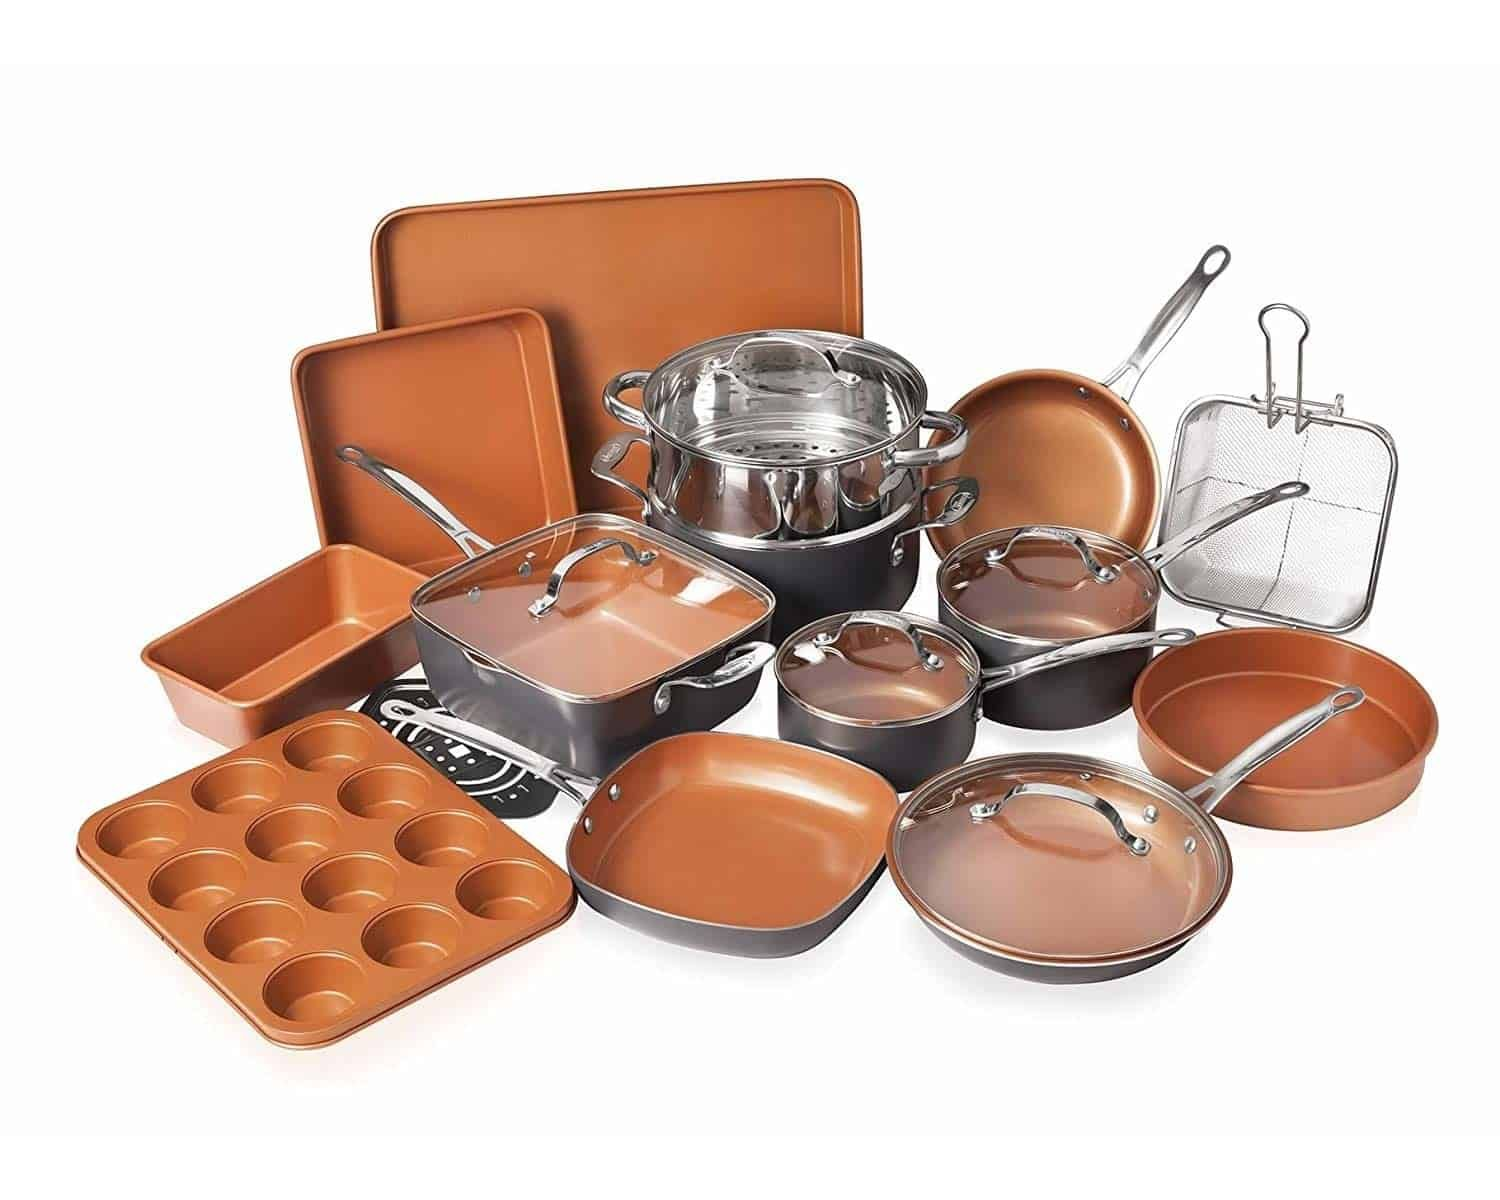 Prize Giveaway Aug 2018 Ceramic Cookware Set Cookware And